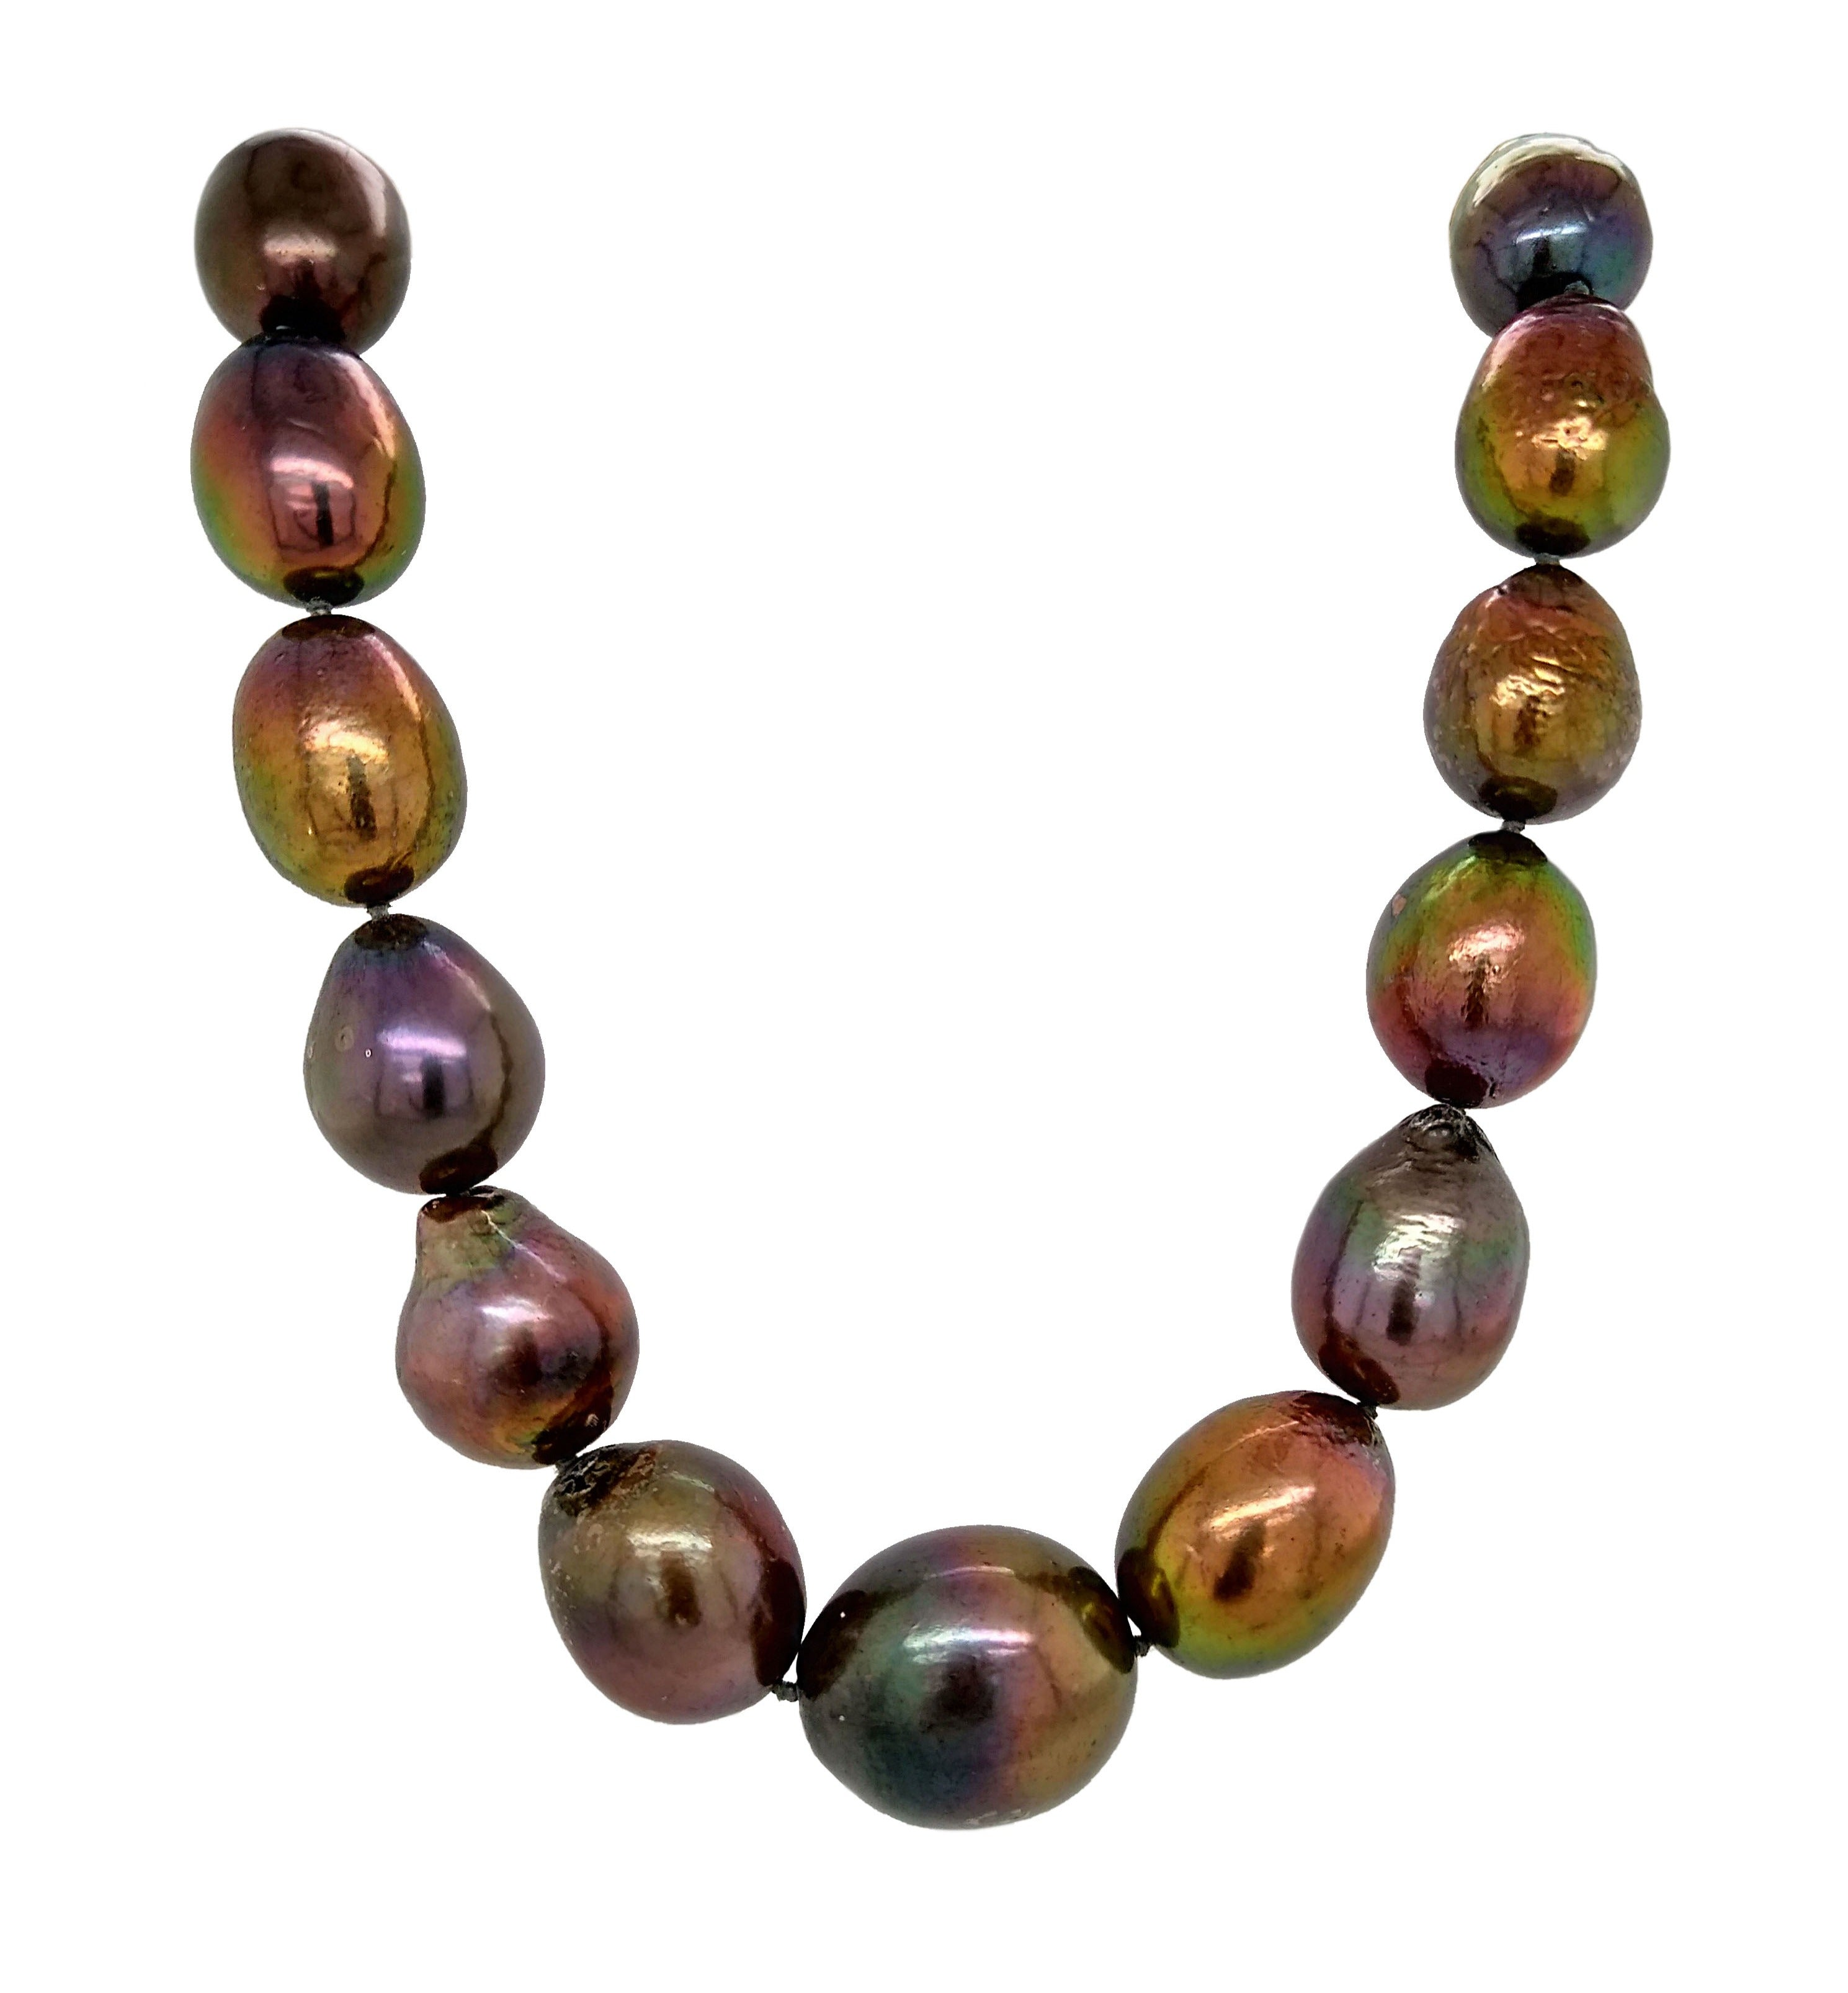 Silver with Yellow Gold Plating, Freshwater Cultured Black Graduated Baroque Pearl Necklace